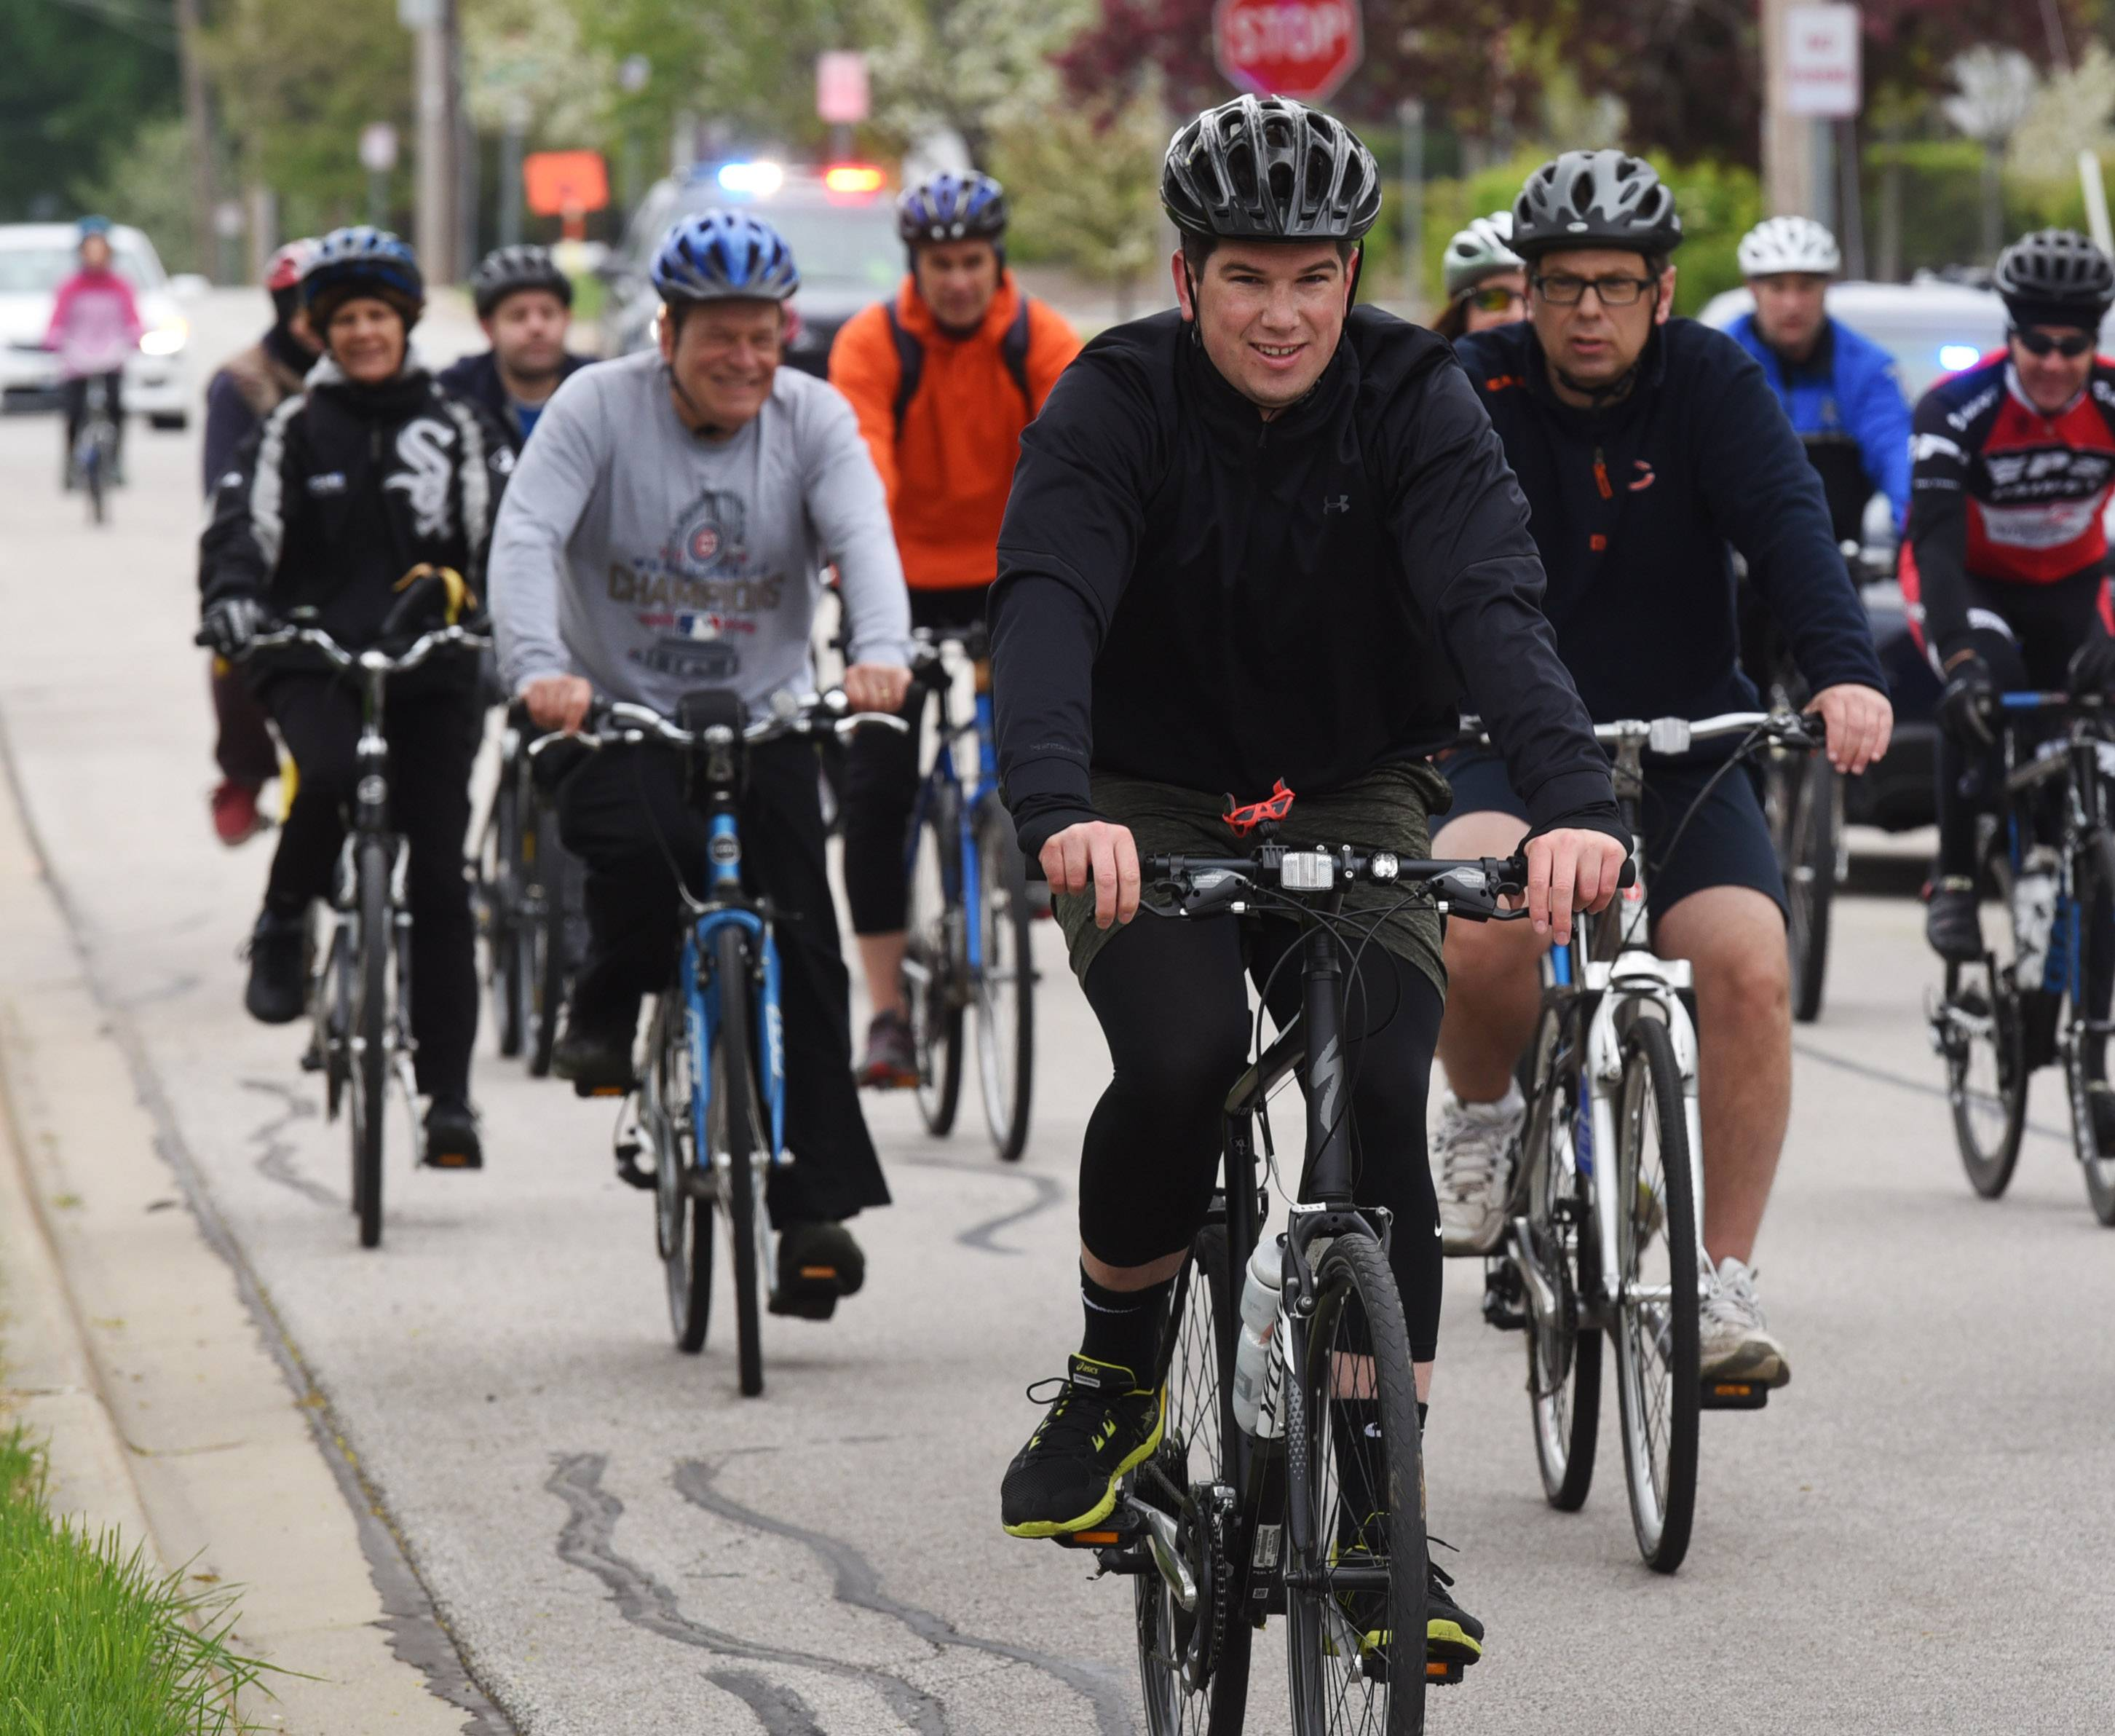 Damp weather conditions didn't keep about a dozen cyclists away from the Bike Arlington Heights Bike Ride Saturday morning that started and finished at North School Park.